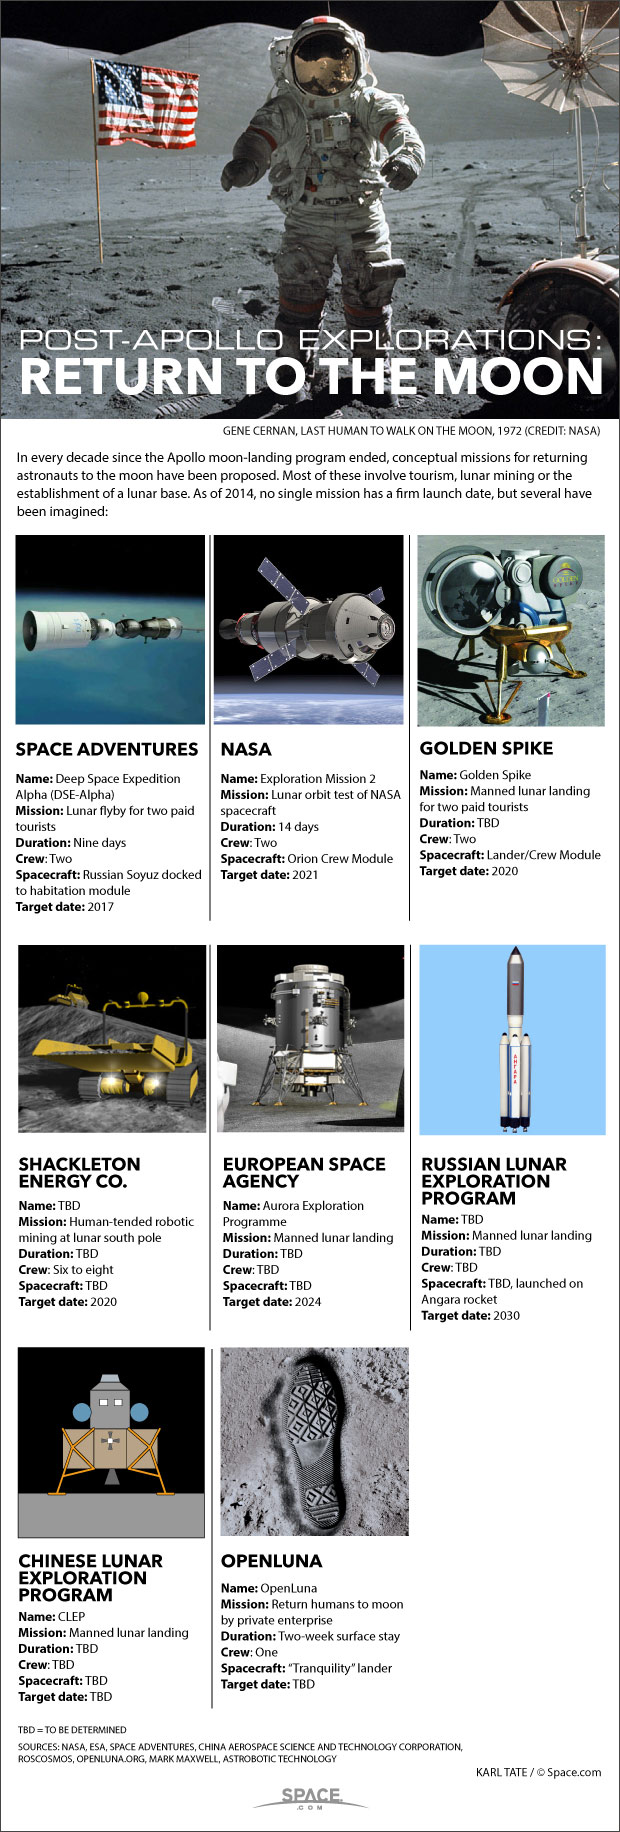 Listing of plans for human flights to the moon